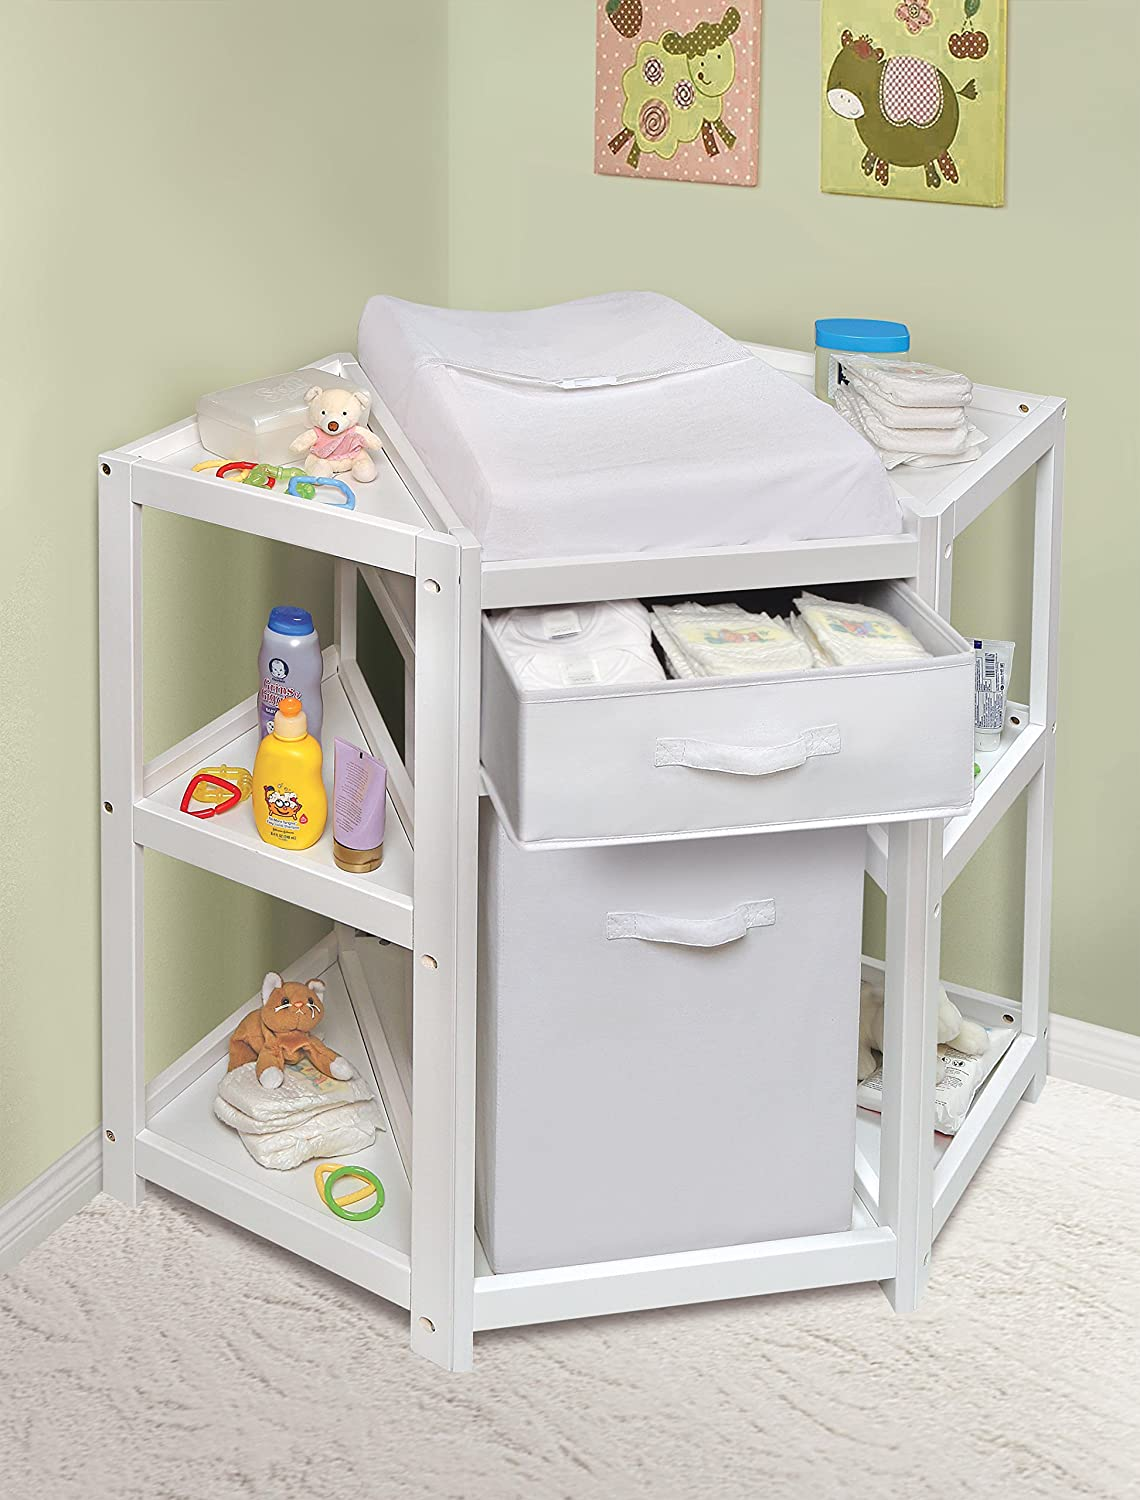 Merveilleux Amazon.com : Badger Basket Diaper Corner Baby Changing Table With  Hamper/Basket, White : Baby